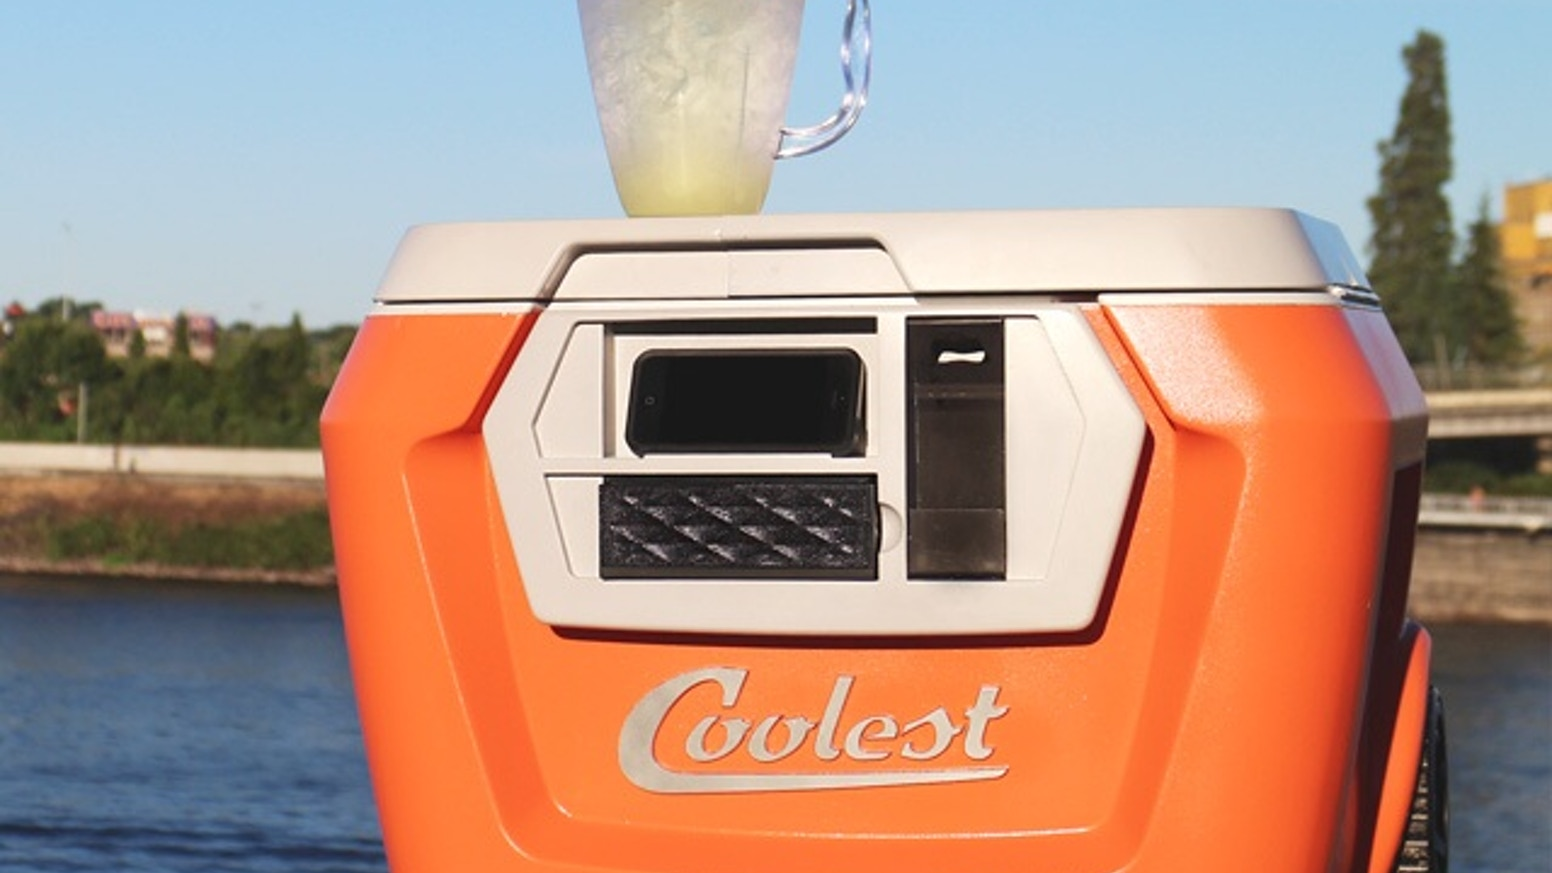 COOLEST COOLER: 21st Century Cooler that\'s Actually Cooler by Ryan ...